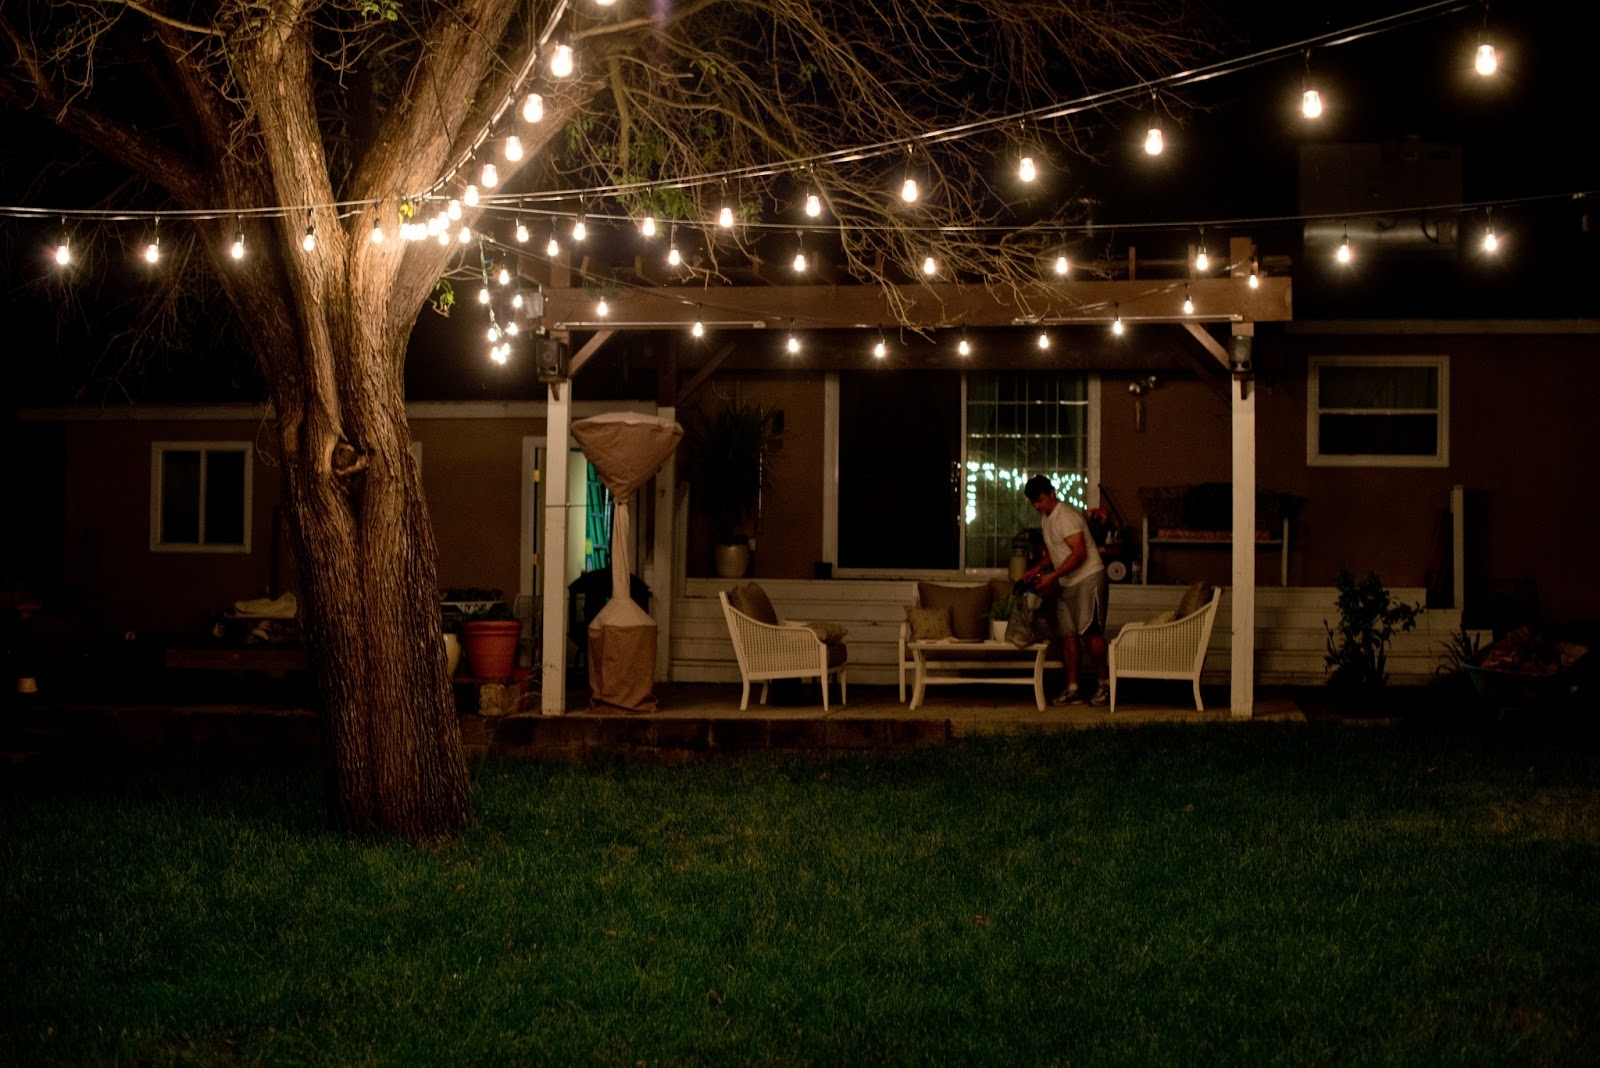 Well Known Outdoor Hanging Deck Lights In Backyardring Lights Led Outdoor Globe Lowes Outside Ideas Hanging (View 18 of 20)